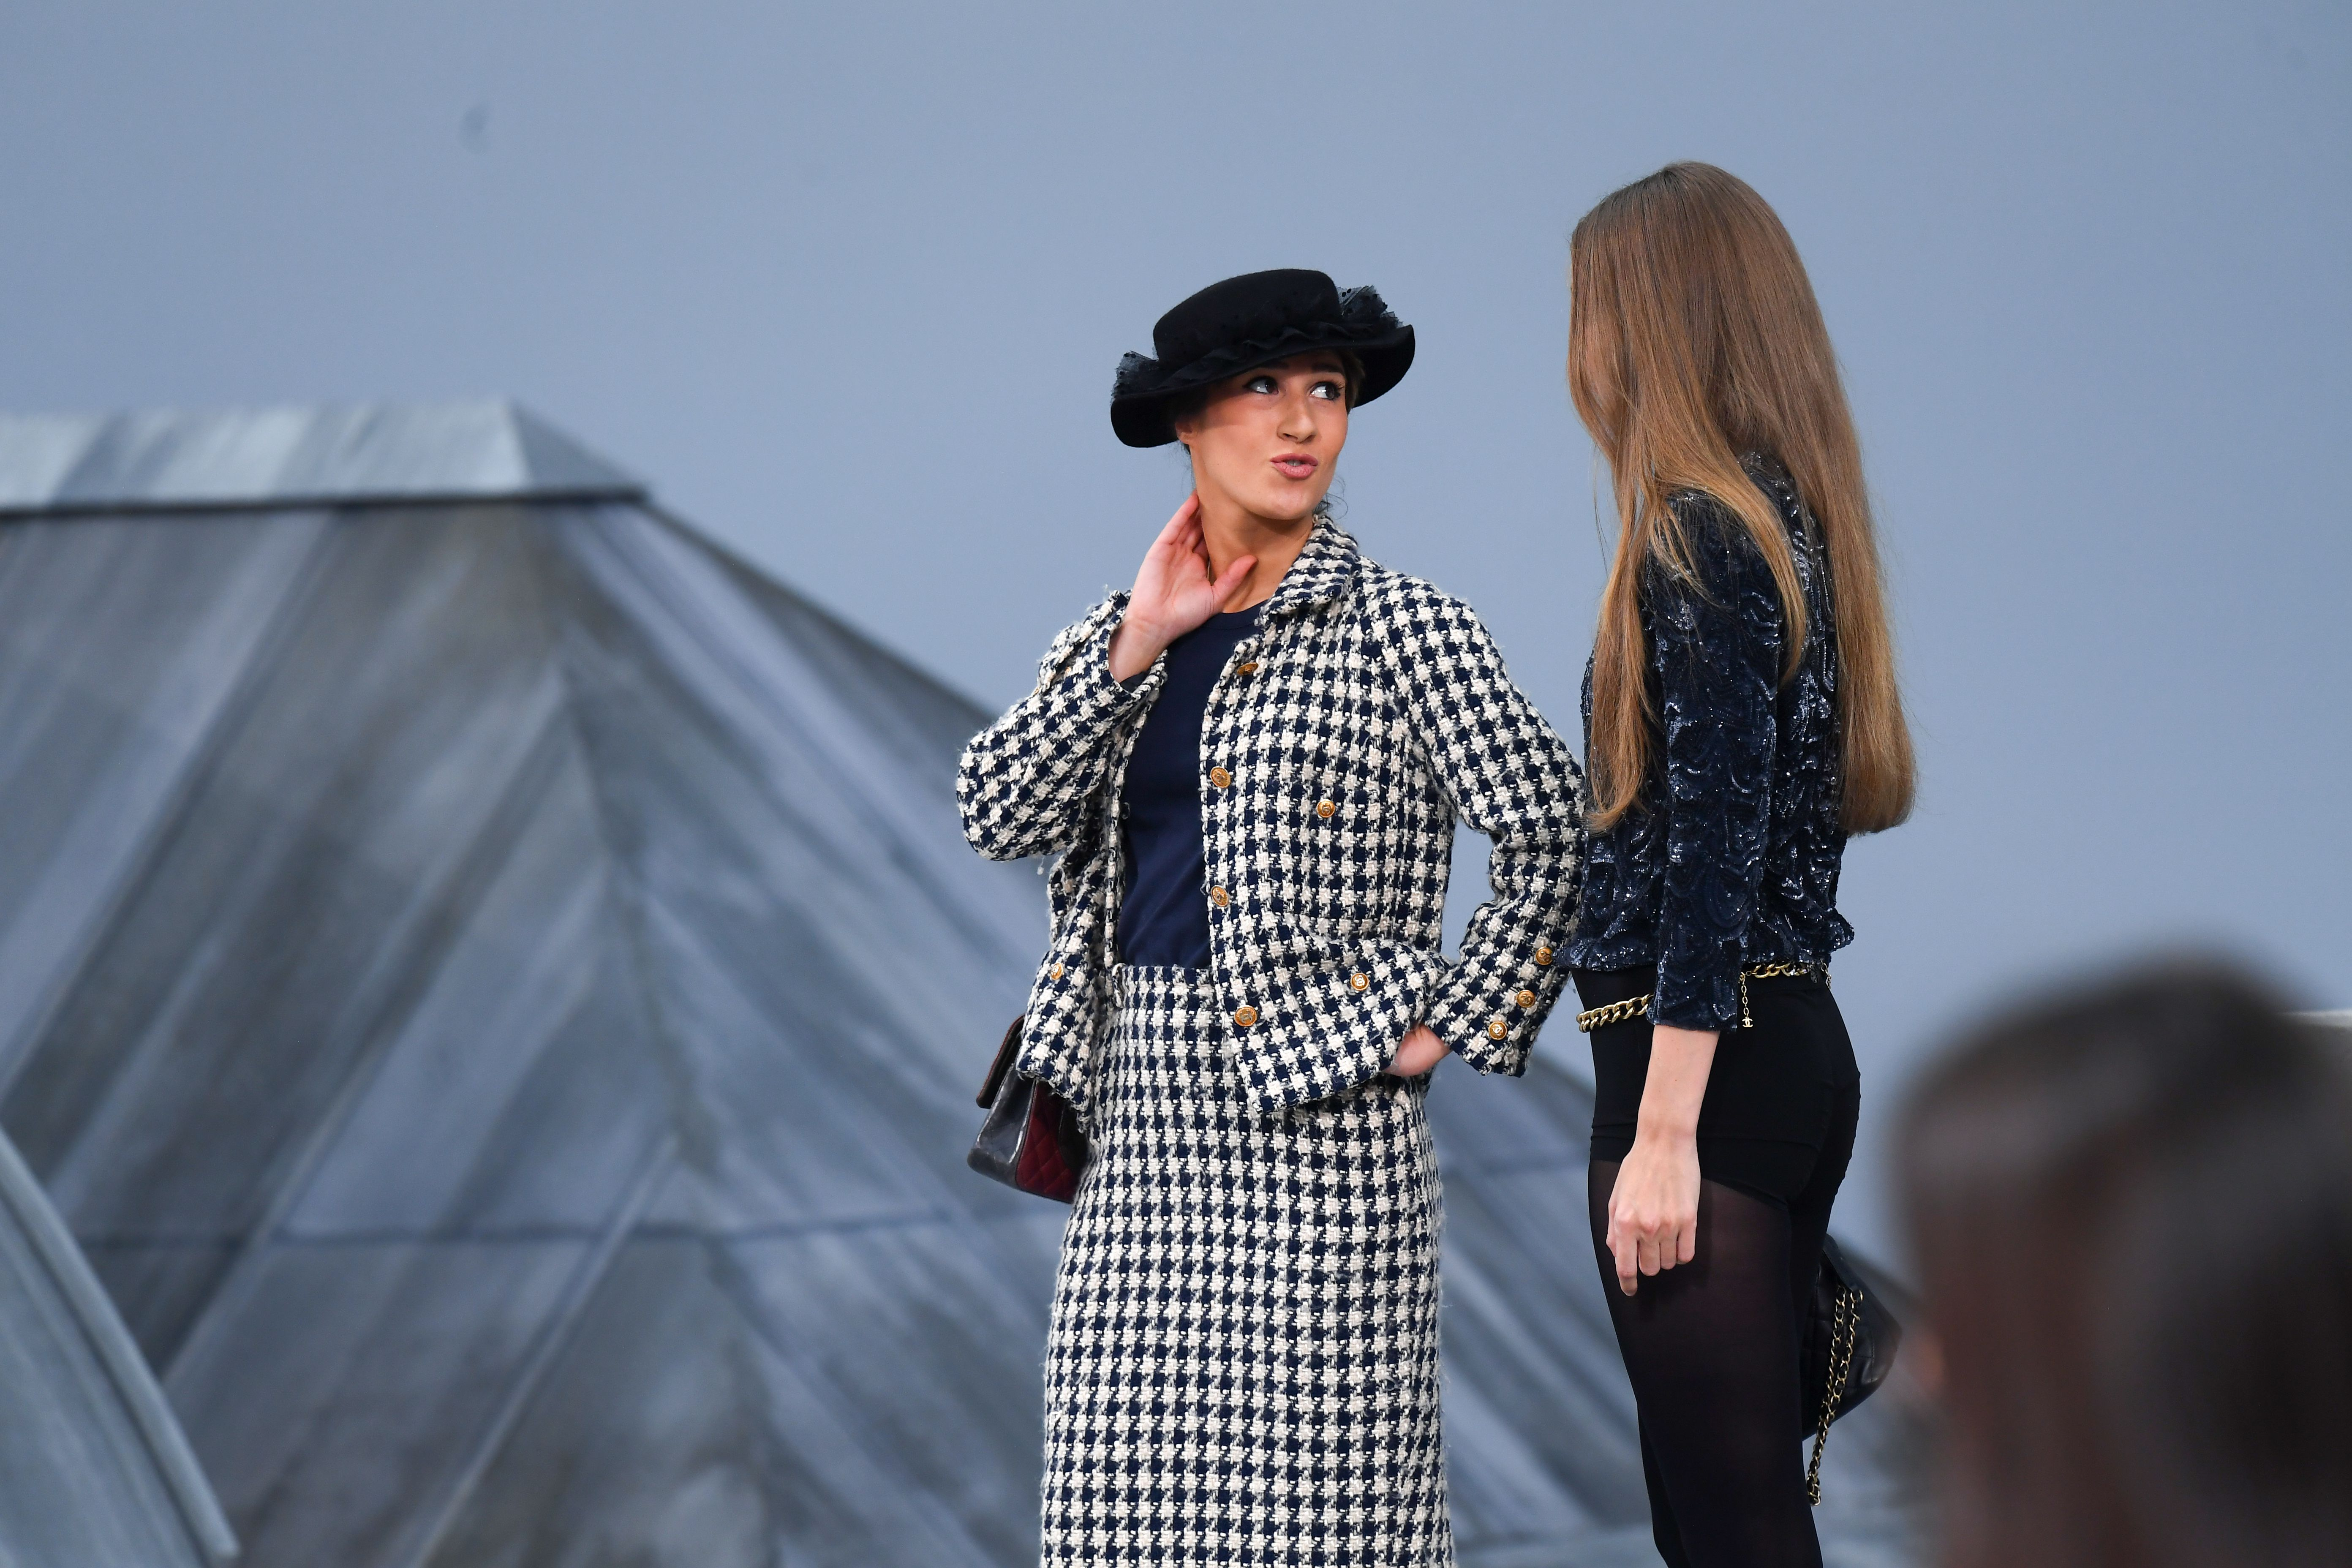 Gigi Hadid approaches a woman during the finale and escorts her off the catwalkChanel show, Runway, Spring Summer 2020, Paris Fashion Week, France - 01 Oct 2019